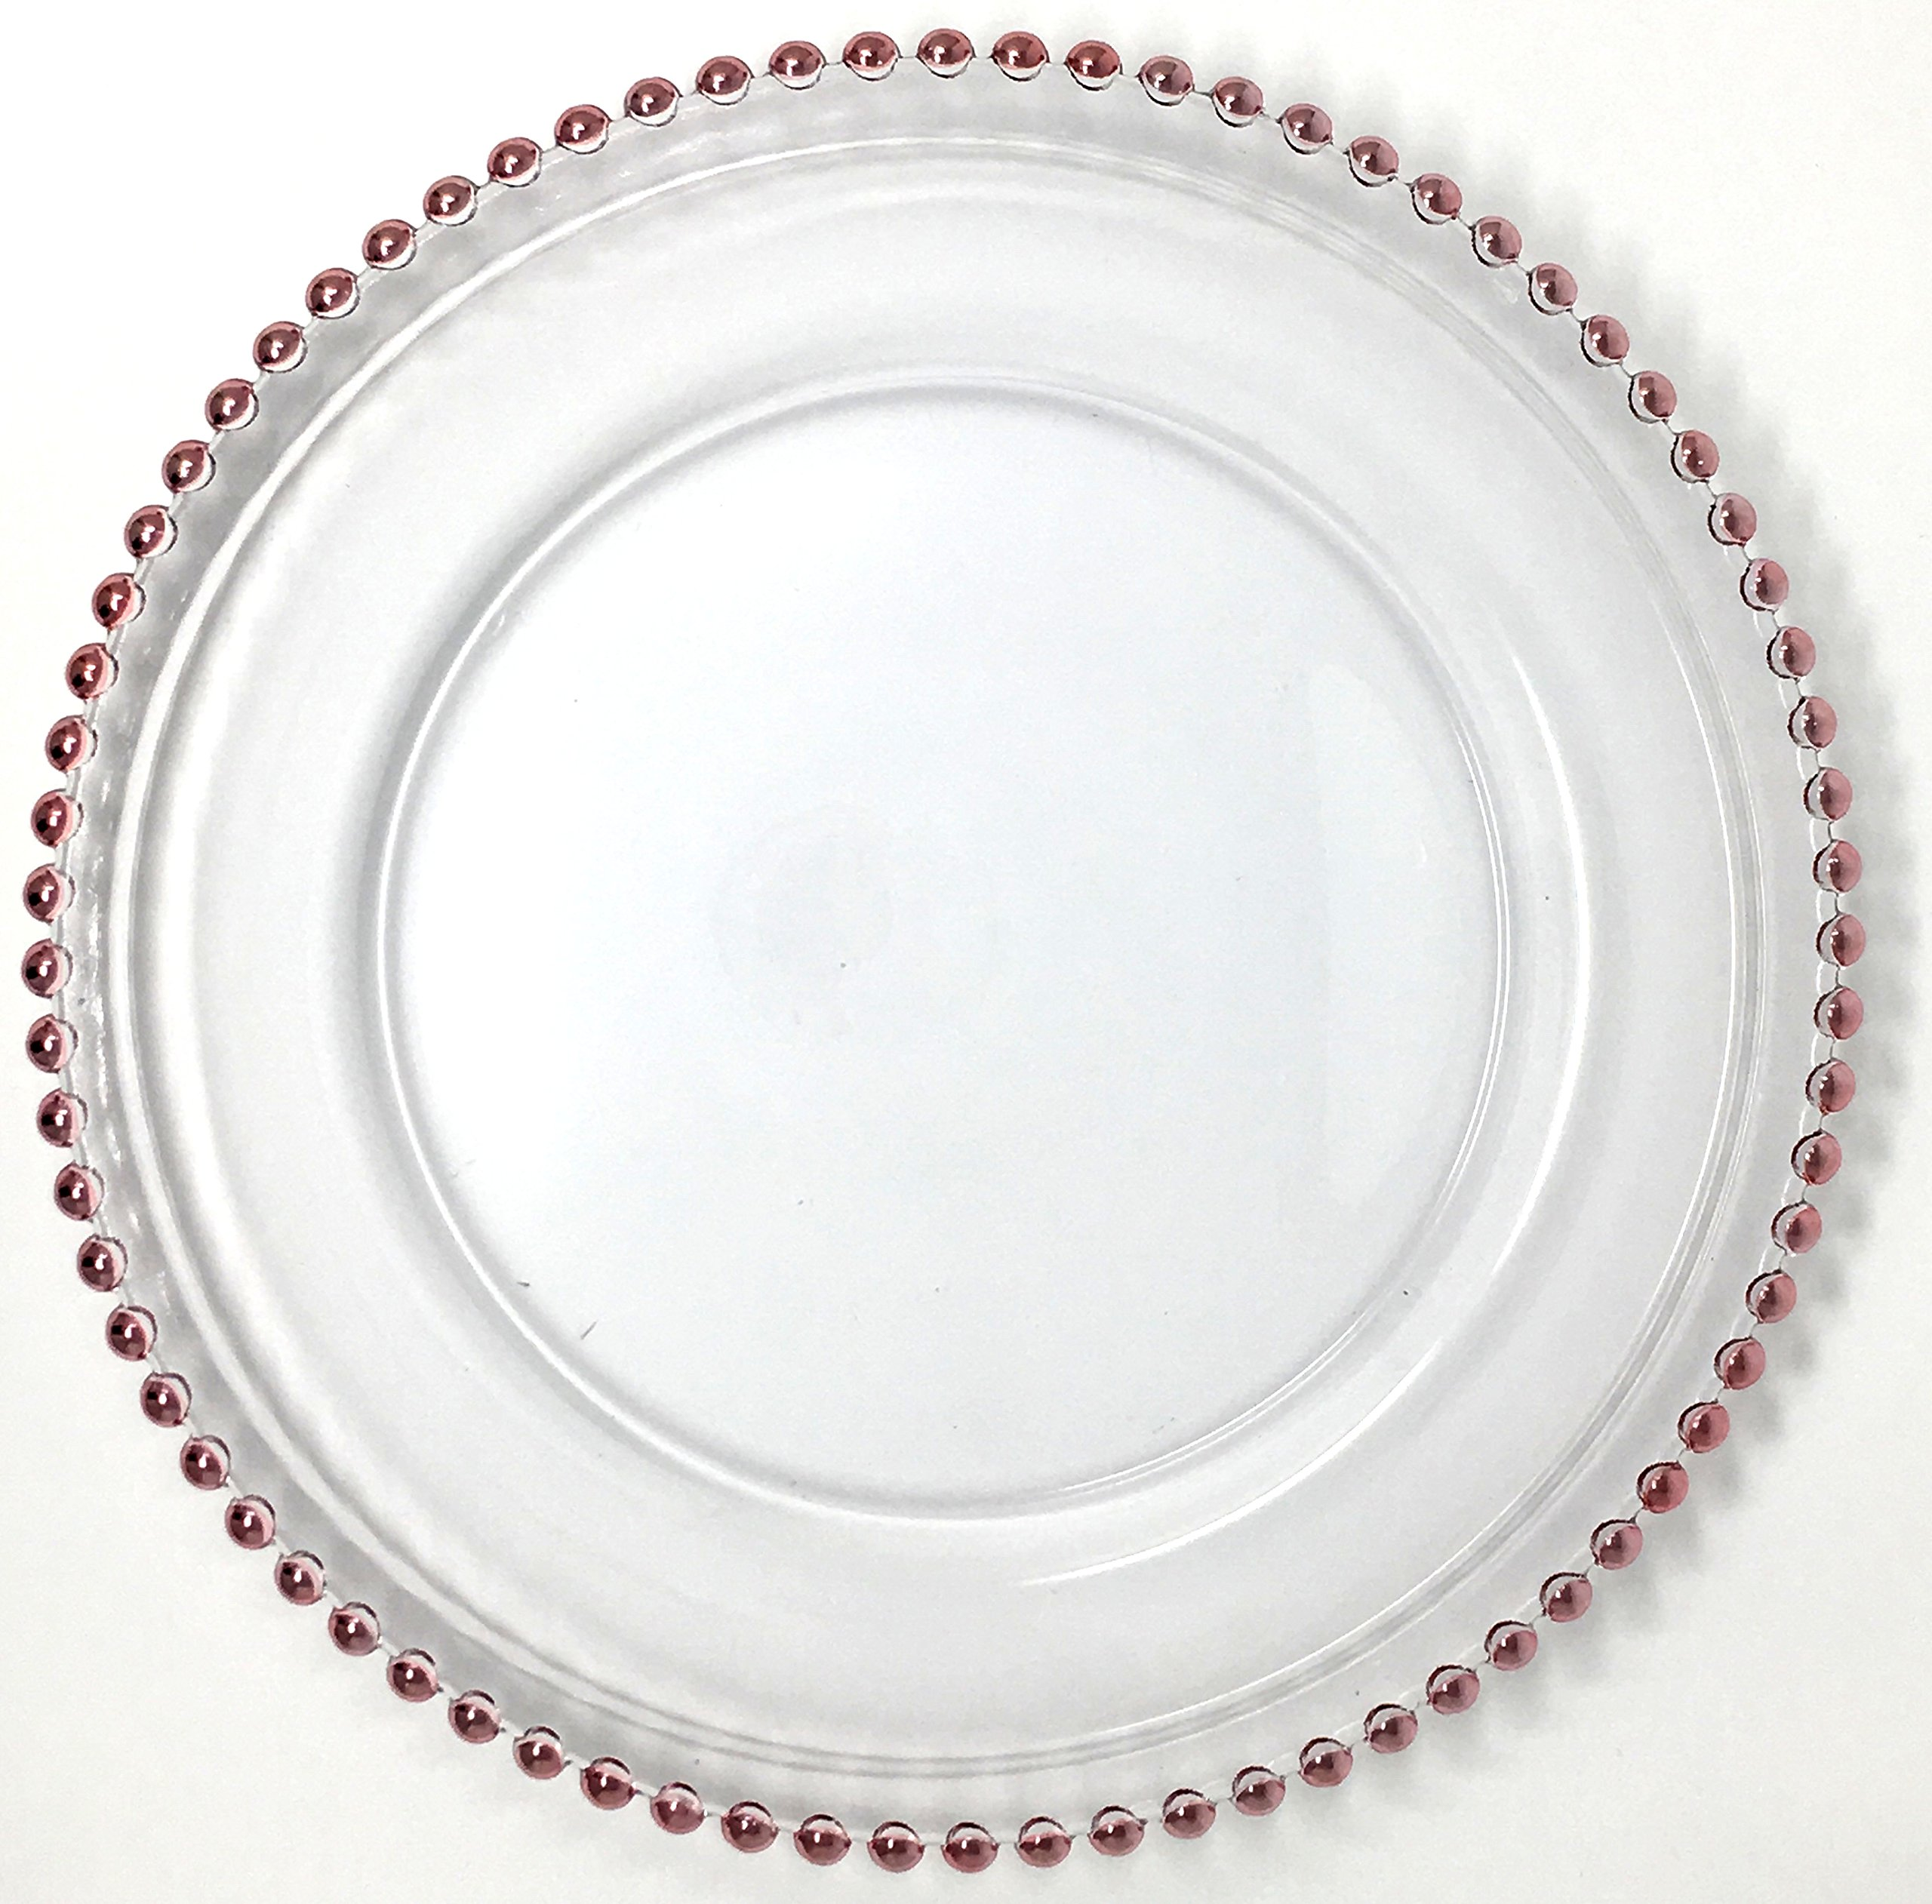 Beautiful Glass Dinnerware Formal 13-Inch Pink Rose Gold Beaded Clear Glass Charger Plate Wedding Party Dinner Modern Appeal Glass Plates (20)